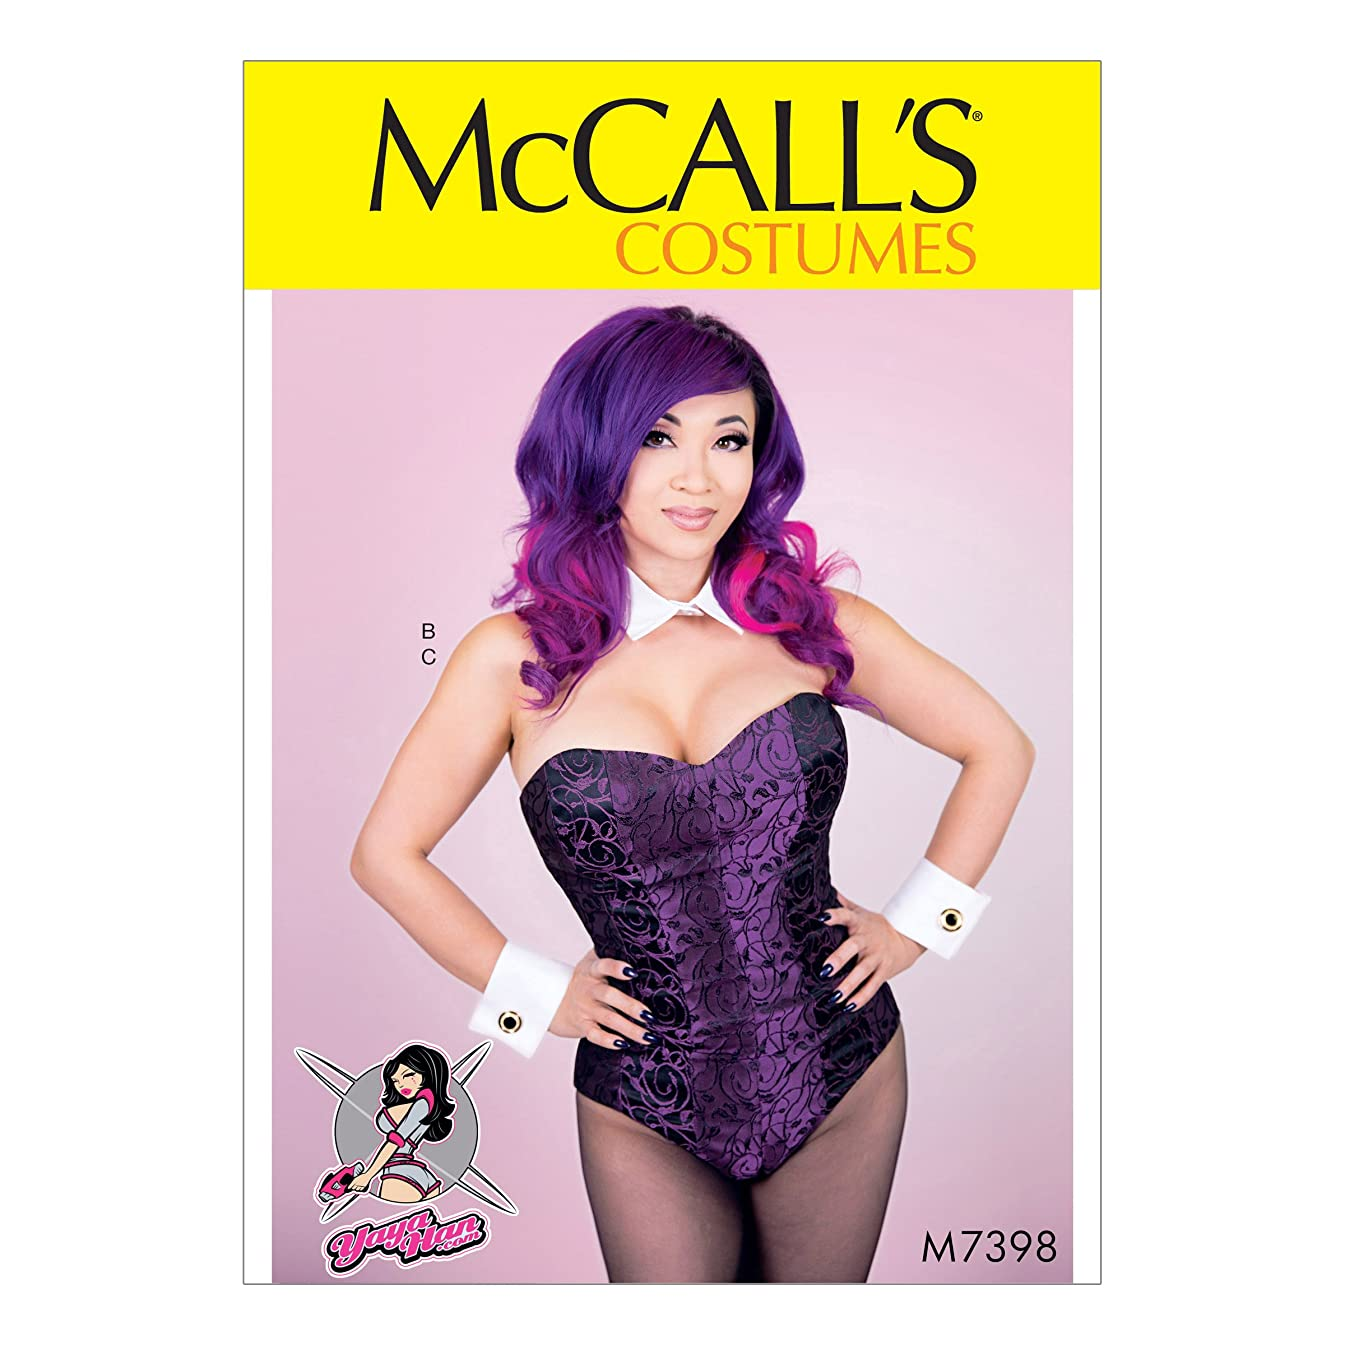 McCall's Patterns M7398 A5 Corseted Bodysuit, Collar, Cuffs and Tail by Yaya Han, Size 6-14